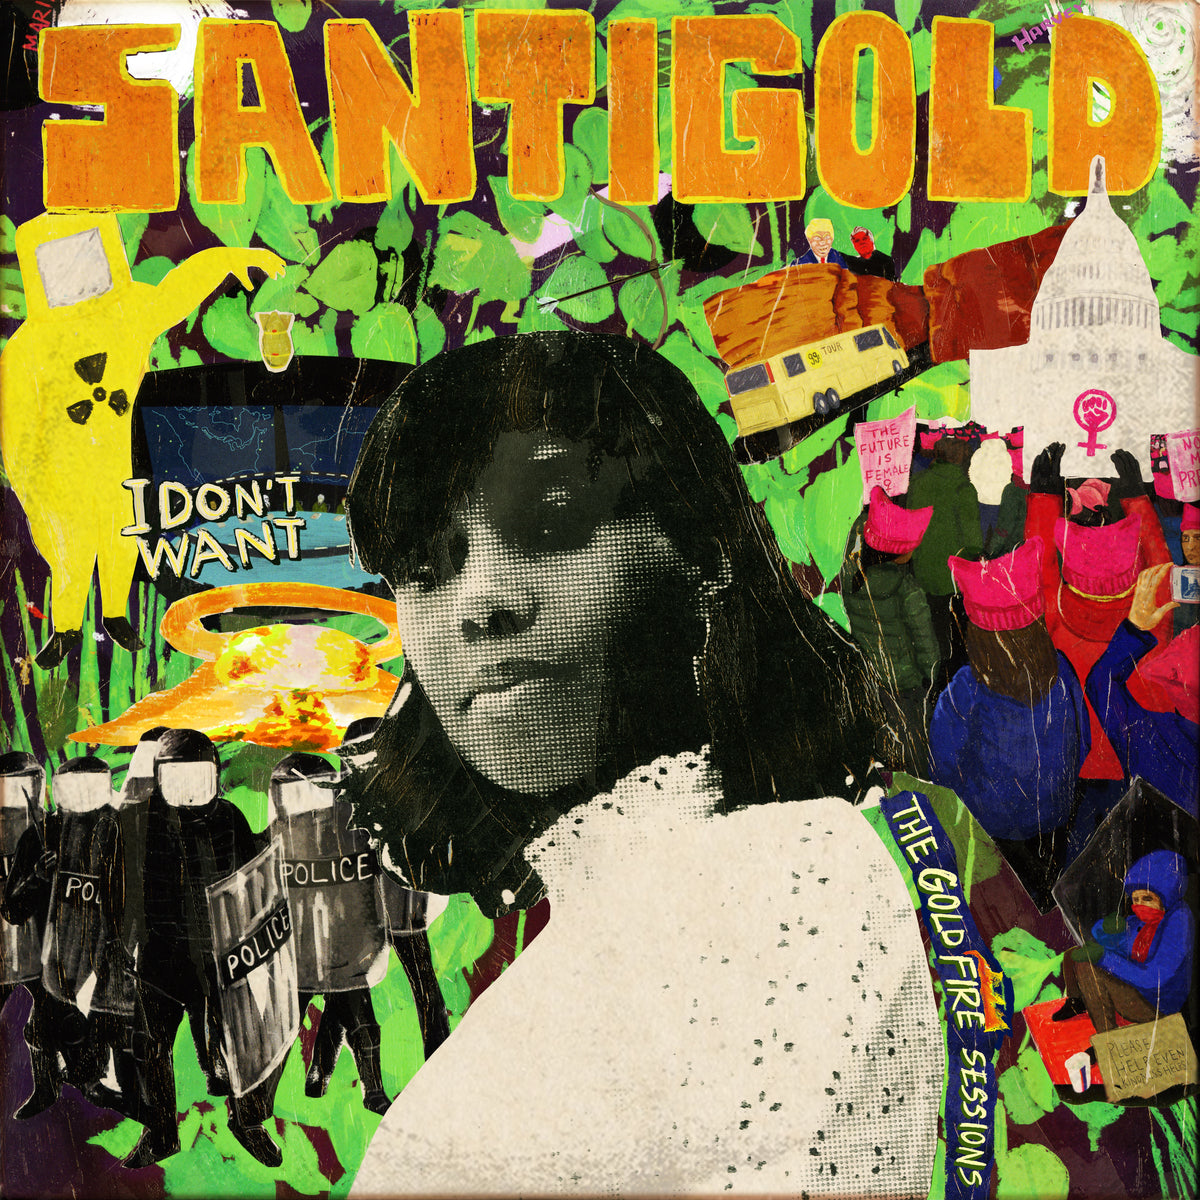 Santigold: I Don't Want - The Gold Fire Sessions Vinyl LP (Record Store Day)